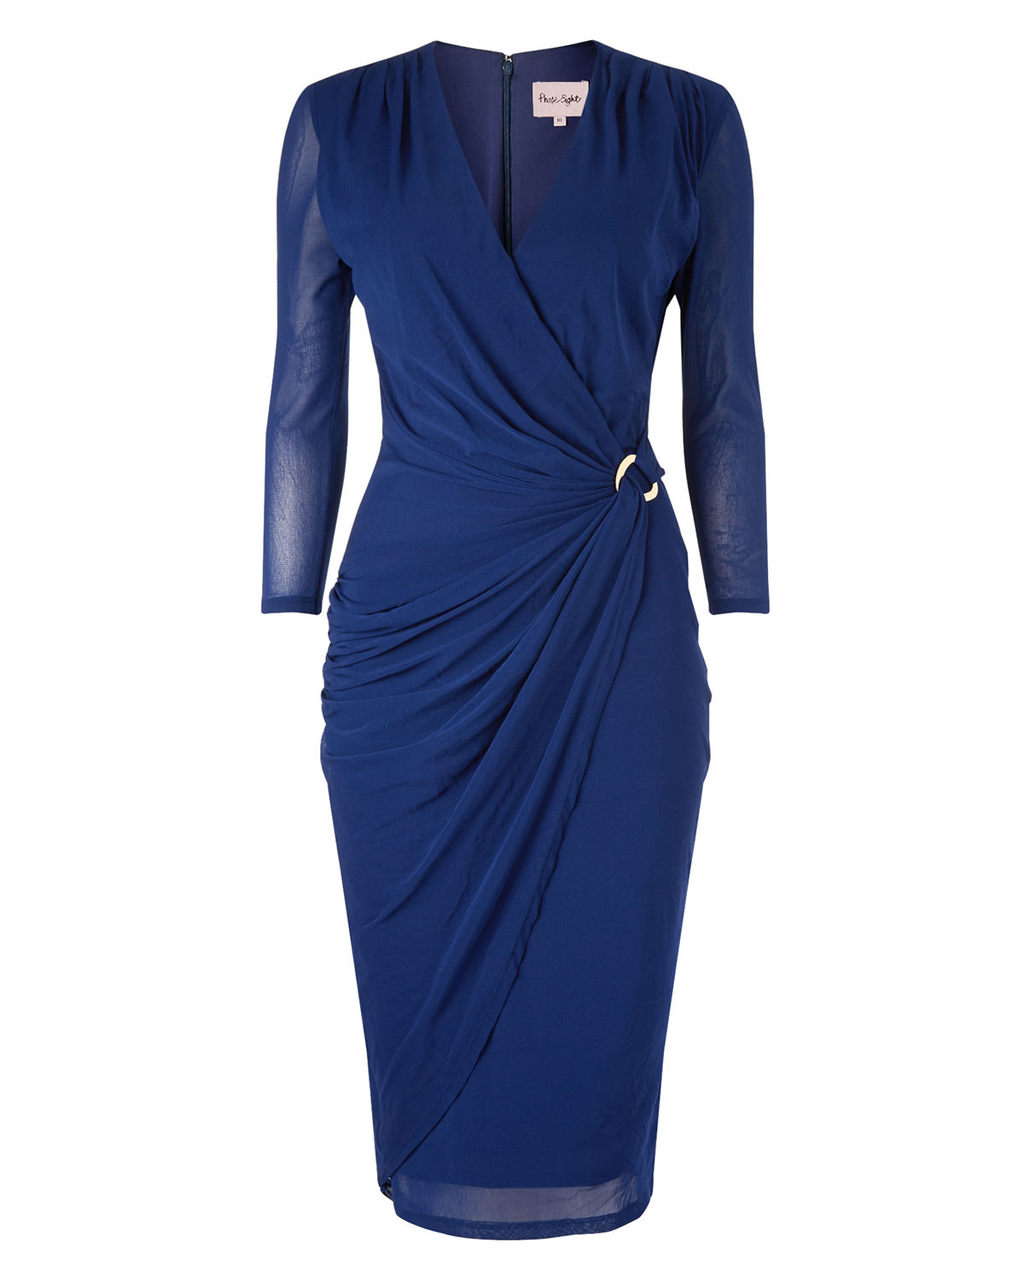 Everleigh Mesh Dress - style: faux wrap/wrap; neckline: v-neck; pattern: plain; waist detail: flattering waist detail; predominant colour: royal blue; occasions: evening, occasion; length: on the knee; fit: body skimming; fibres: polyester/polyamide - 100%; sleeve length: 3/4 length; sleeve style: standard; texture group: sheer fabrics/chiffon/organza etc.; pattern type: fabric; season: a/w 2015; wardrobe: event